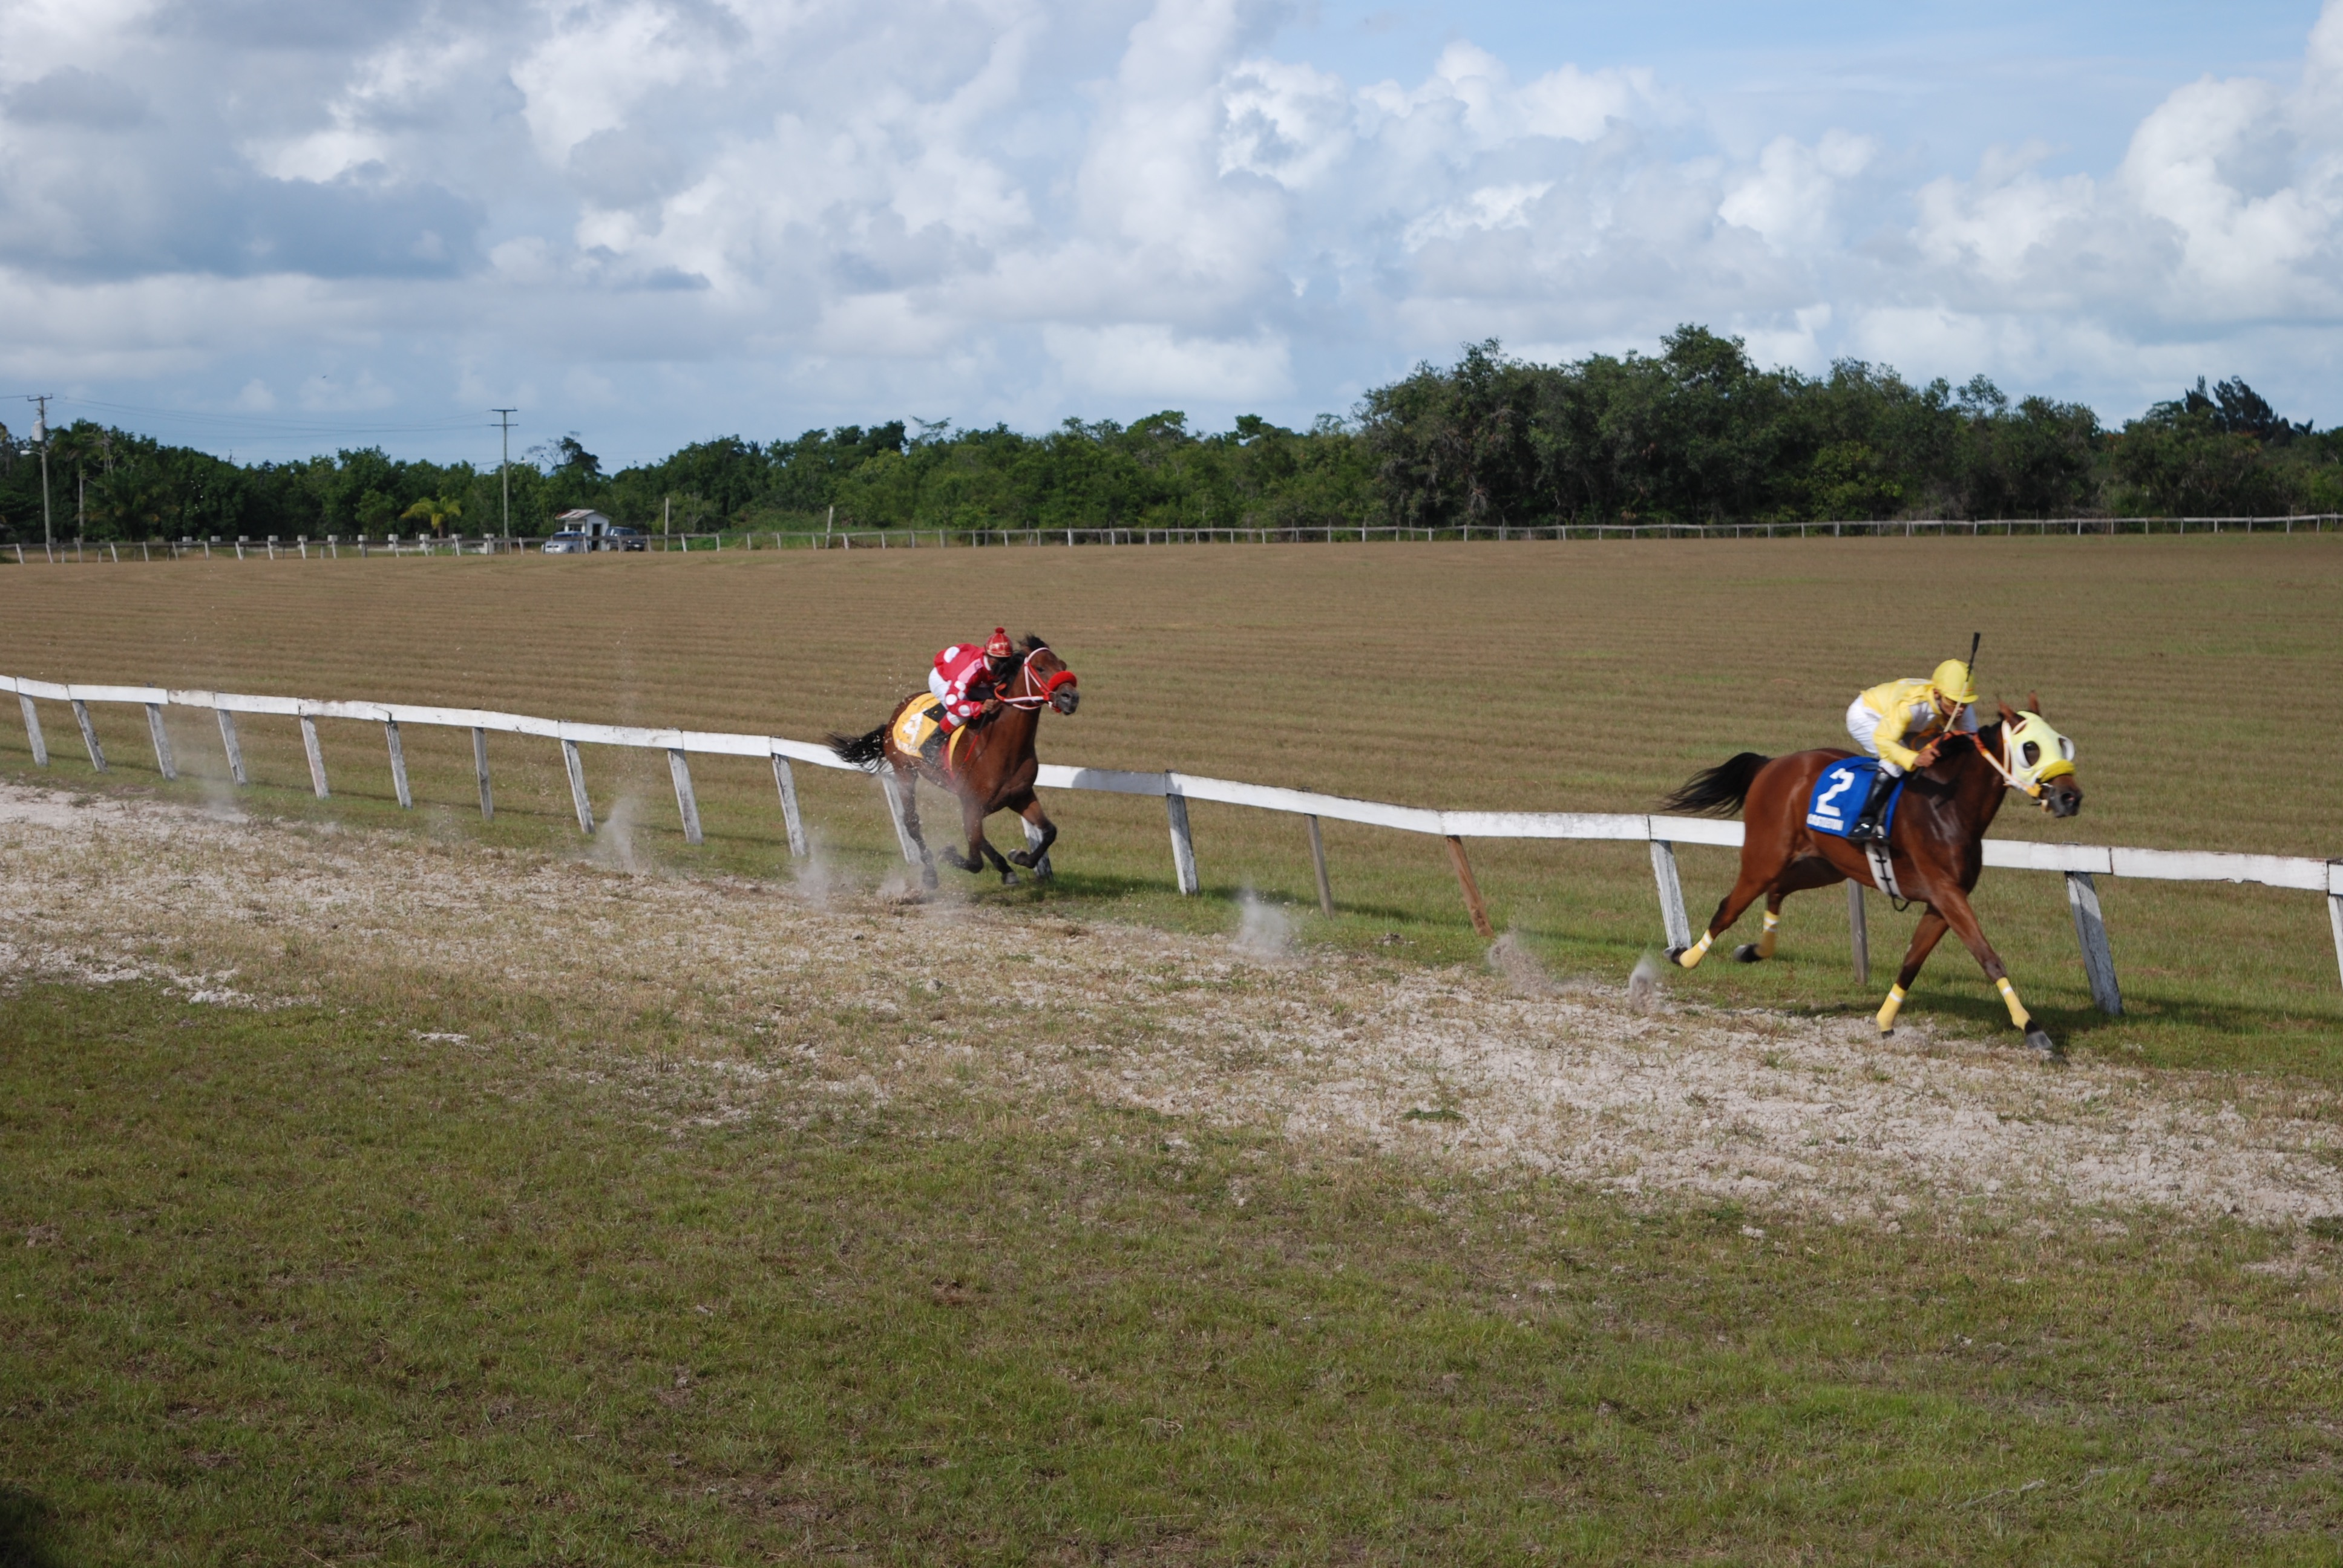 https://horseracingbelize.com/Perfect Gift of the Canton Stables powered home to win the Derby for Untried Two Year Old Thoroughbreds